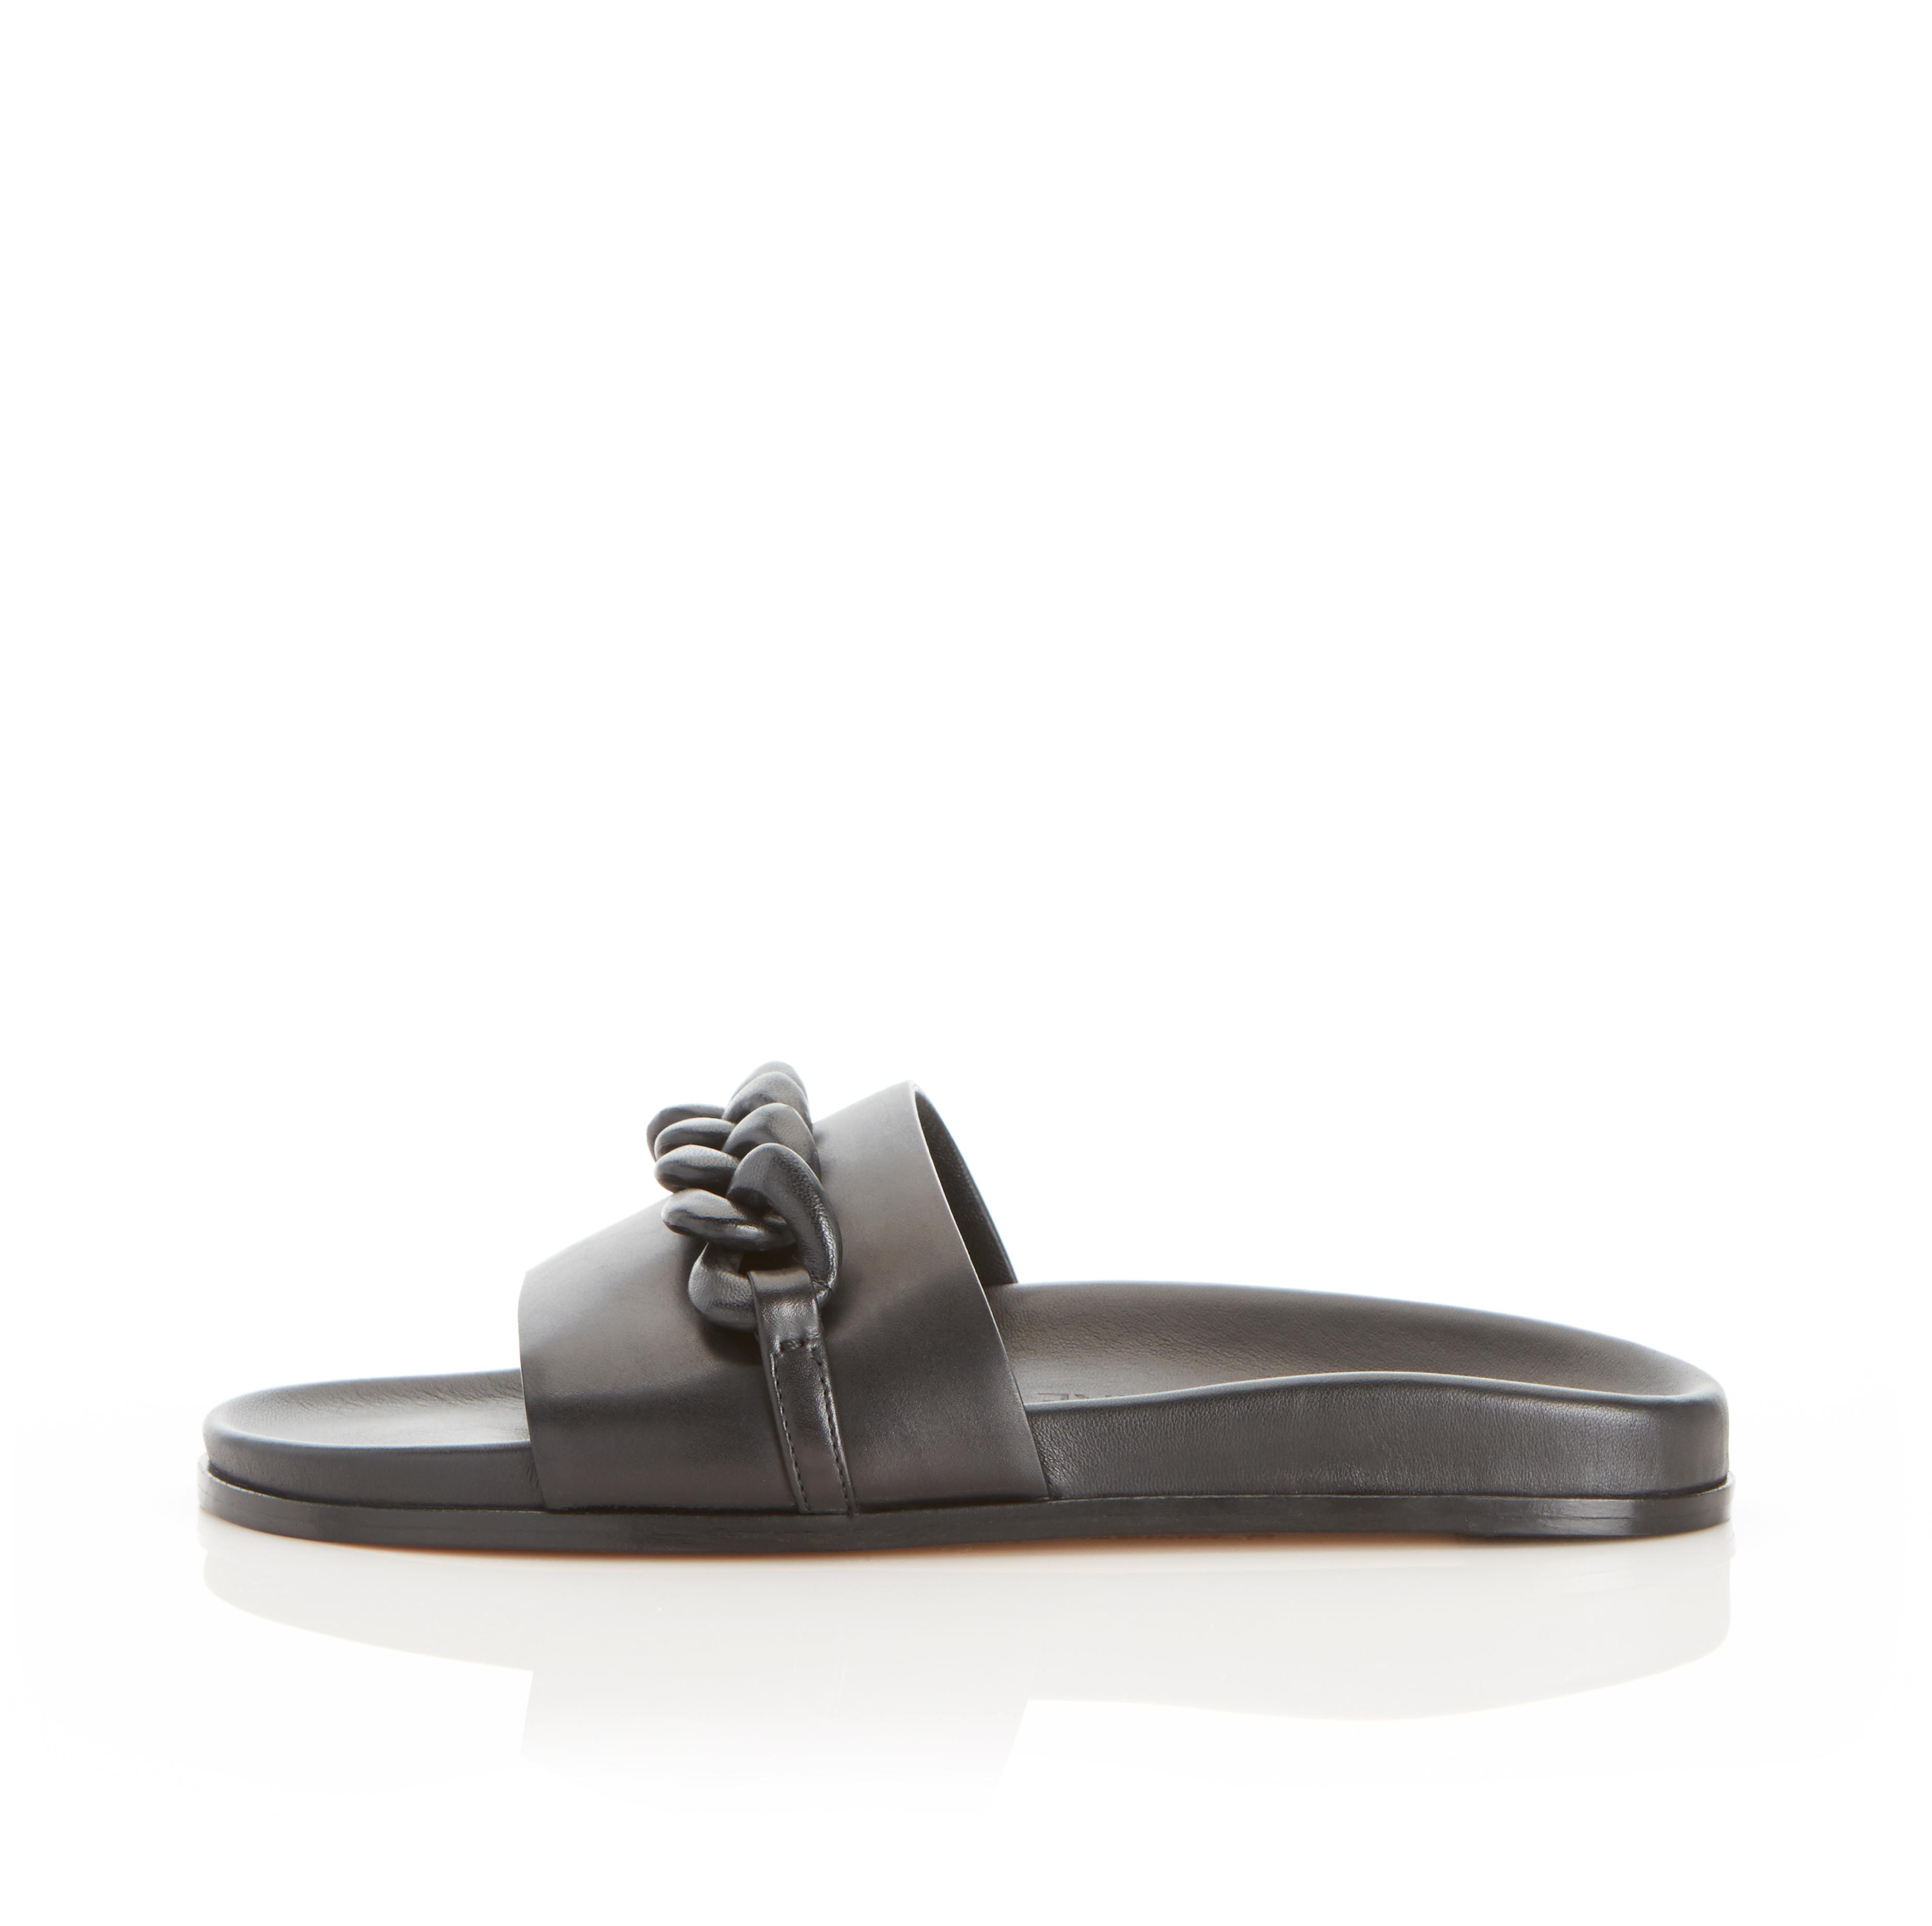 Christine | Leather Chain Sandal with Contoured Footbed